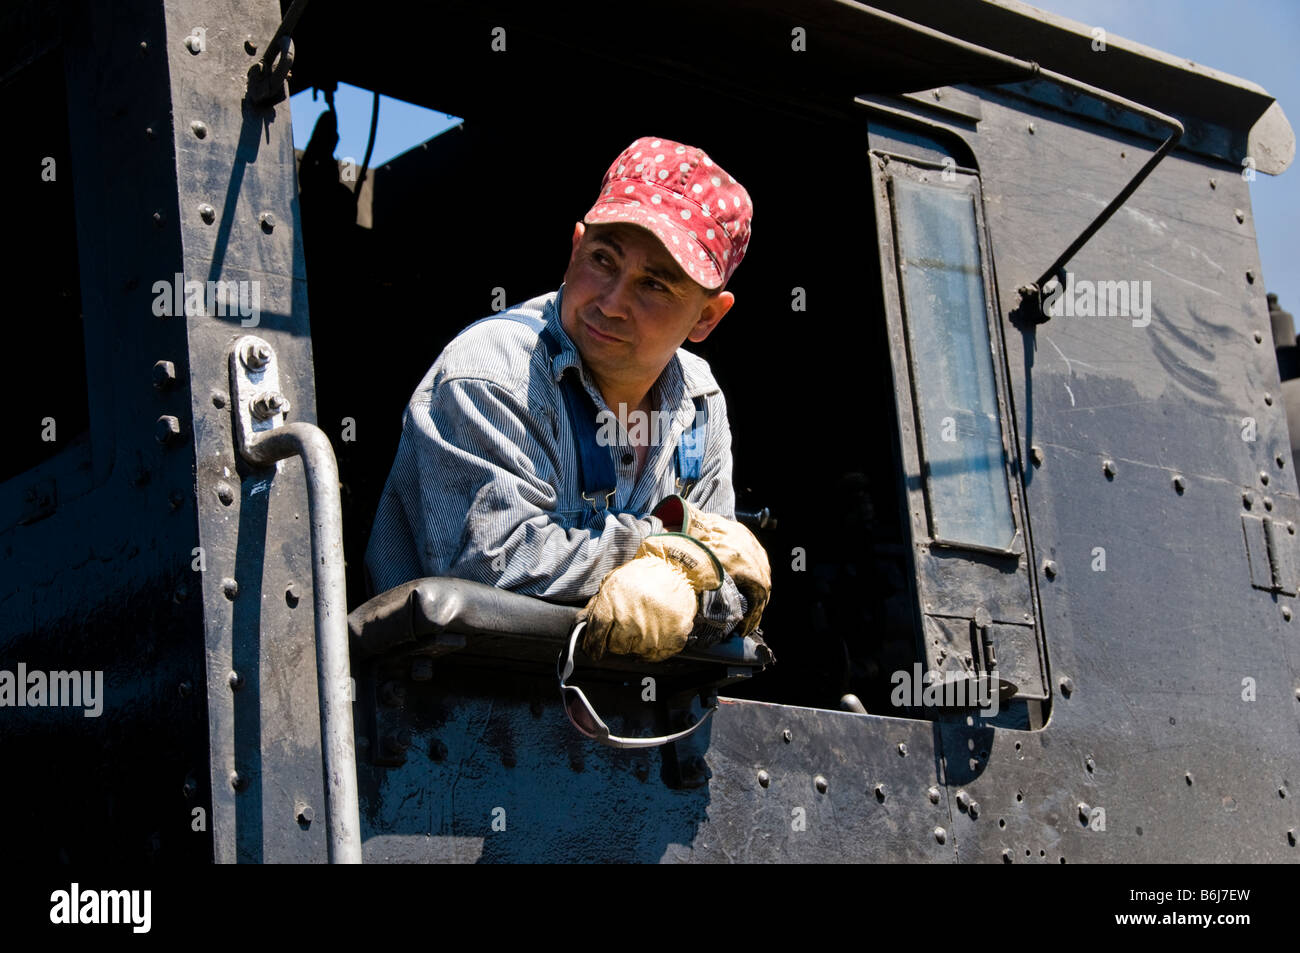 Train engineer looking out of cab on Old fashioned vintage locomotive train engine - Stock Image